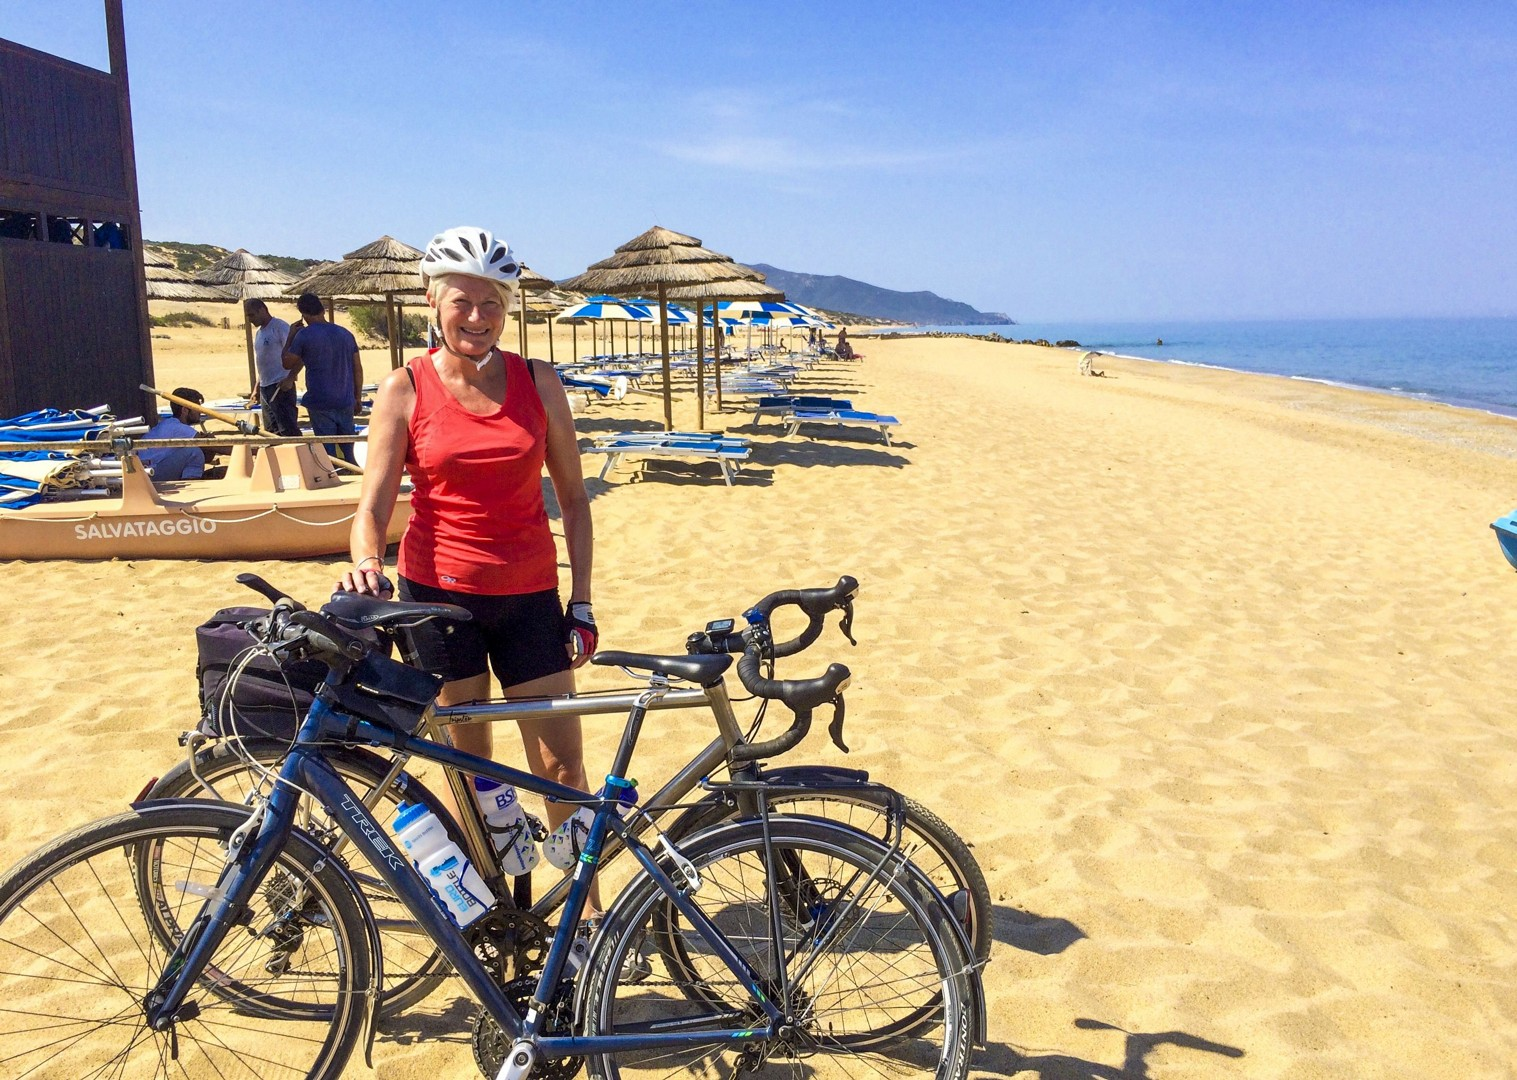 sunny-beaches-sardinia-italy-golden-sands-cycling-holiday.jpg - Italy - Sardinia - Coast to Coast - Self-Guided Leisure Cycling Holiday - Italia Leisure and Family Cycling